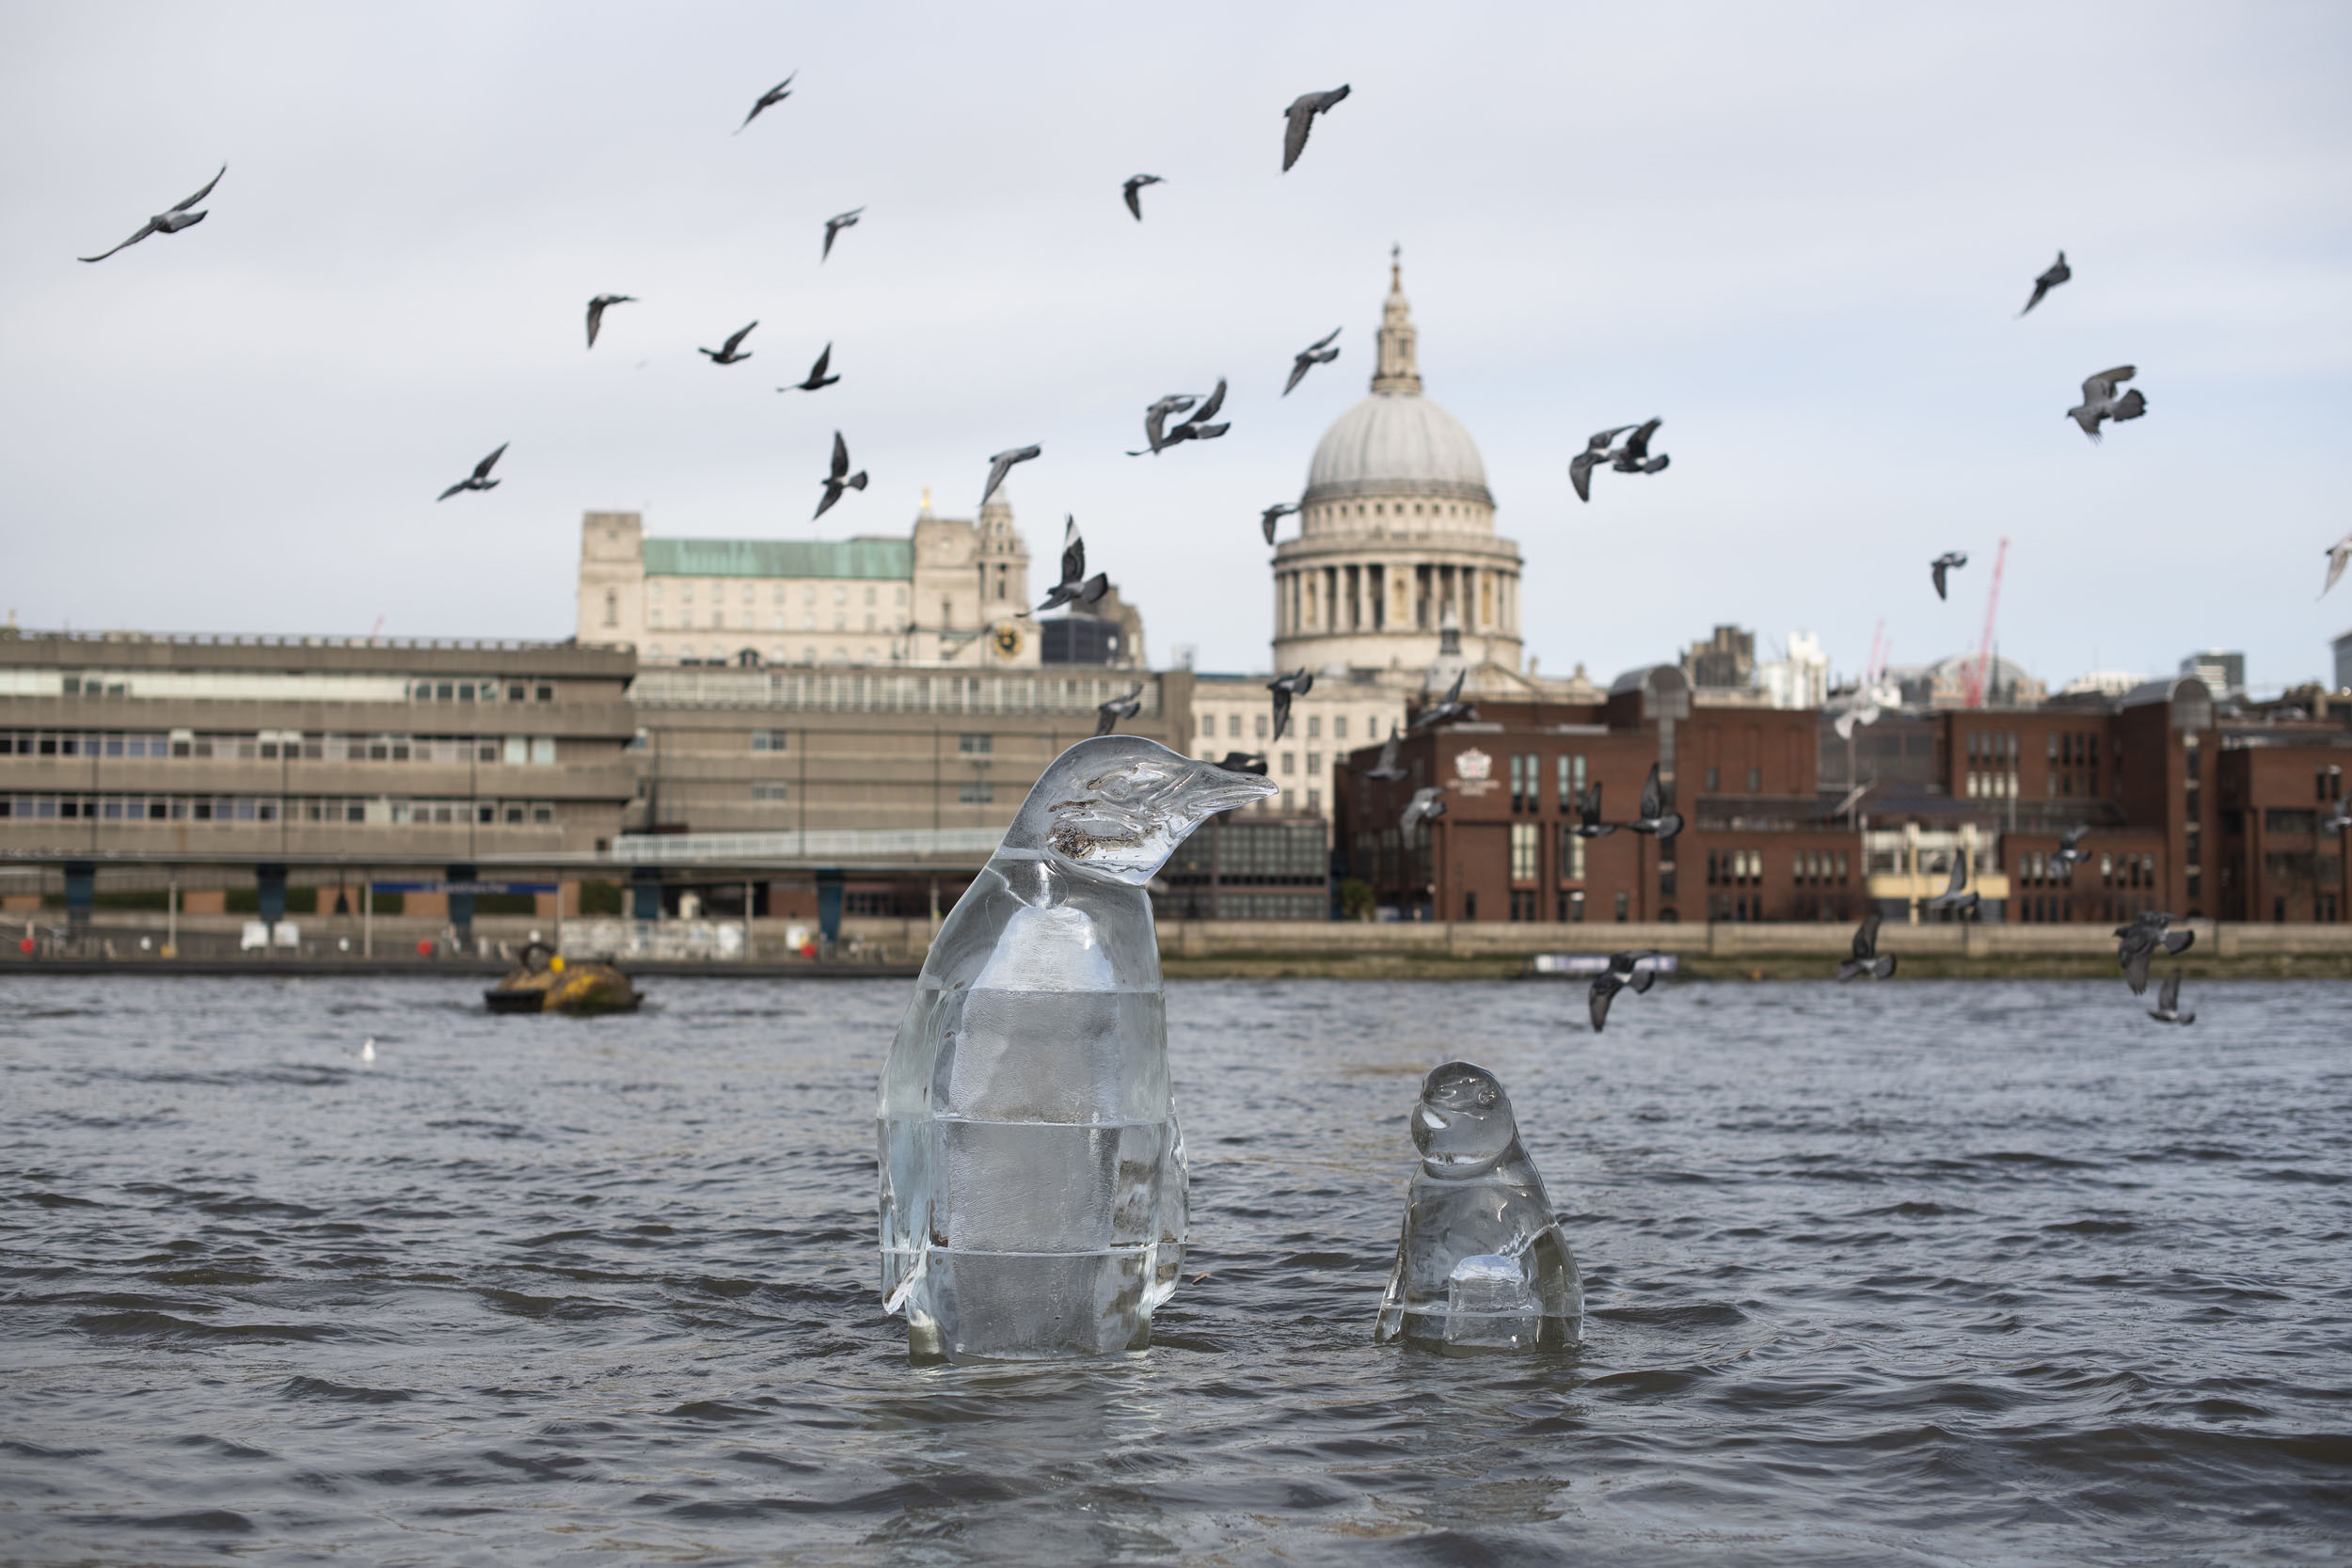 Two penguin ice sculptures are half submerged by the rising tide in the River Thames in London. The iconic dome of St Paul's cathedral is visible in the background